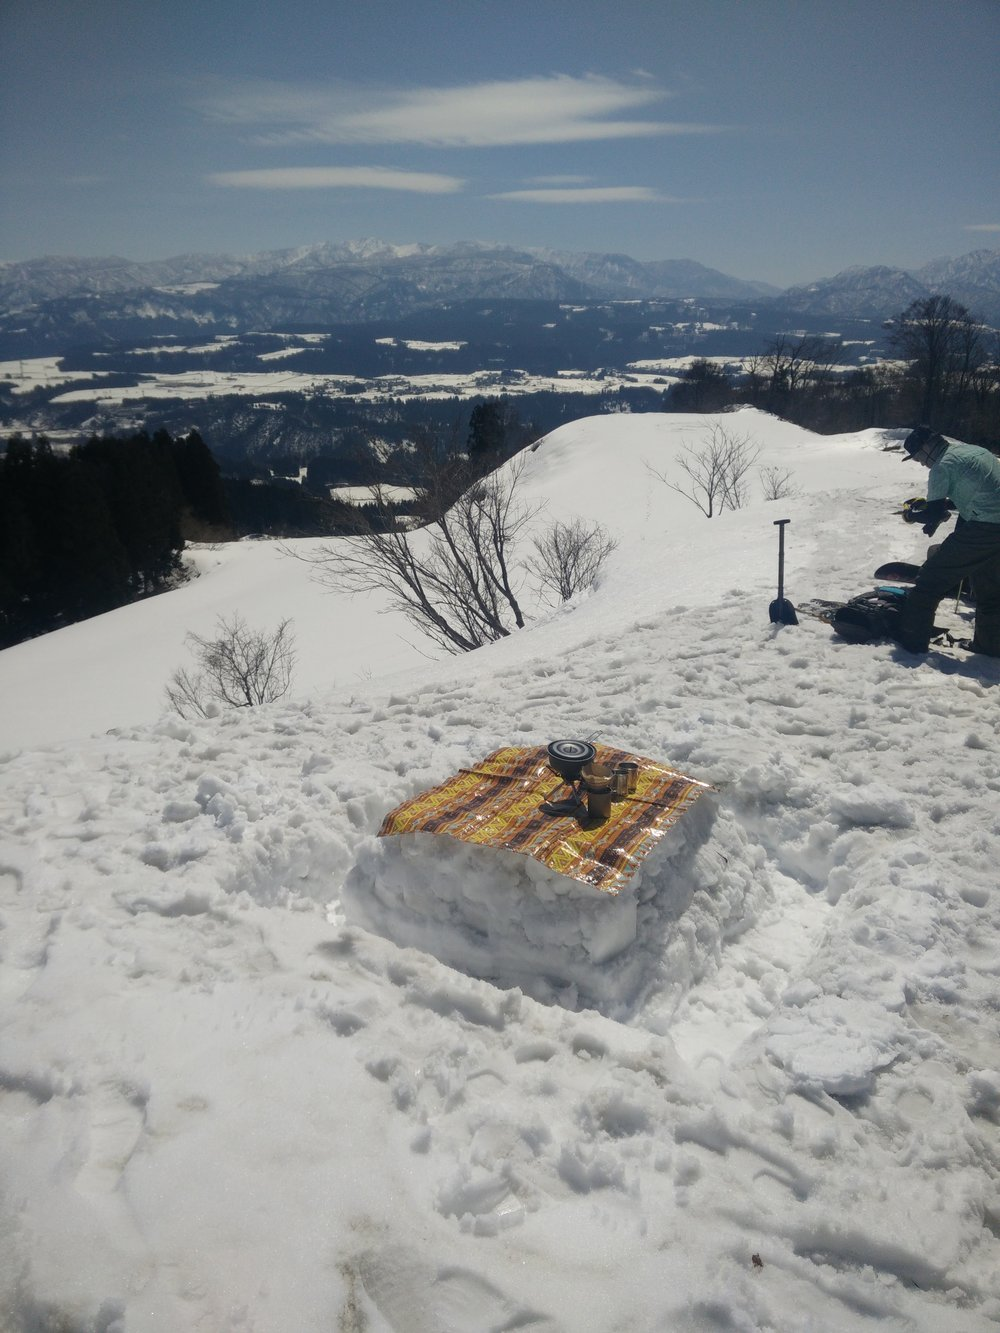 Kick back and relax at the pass on the Matsunoyama Royal Snow Touring. All downhill from here.